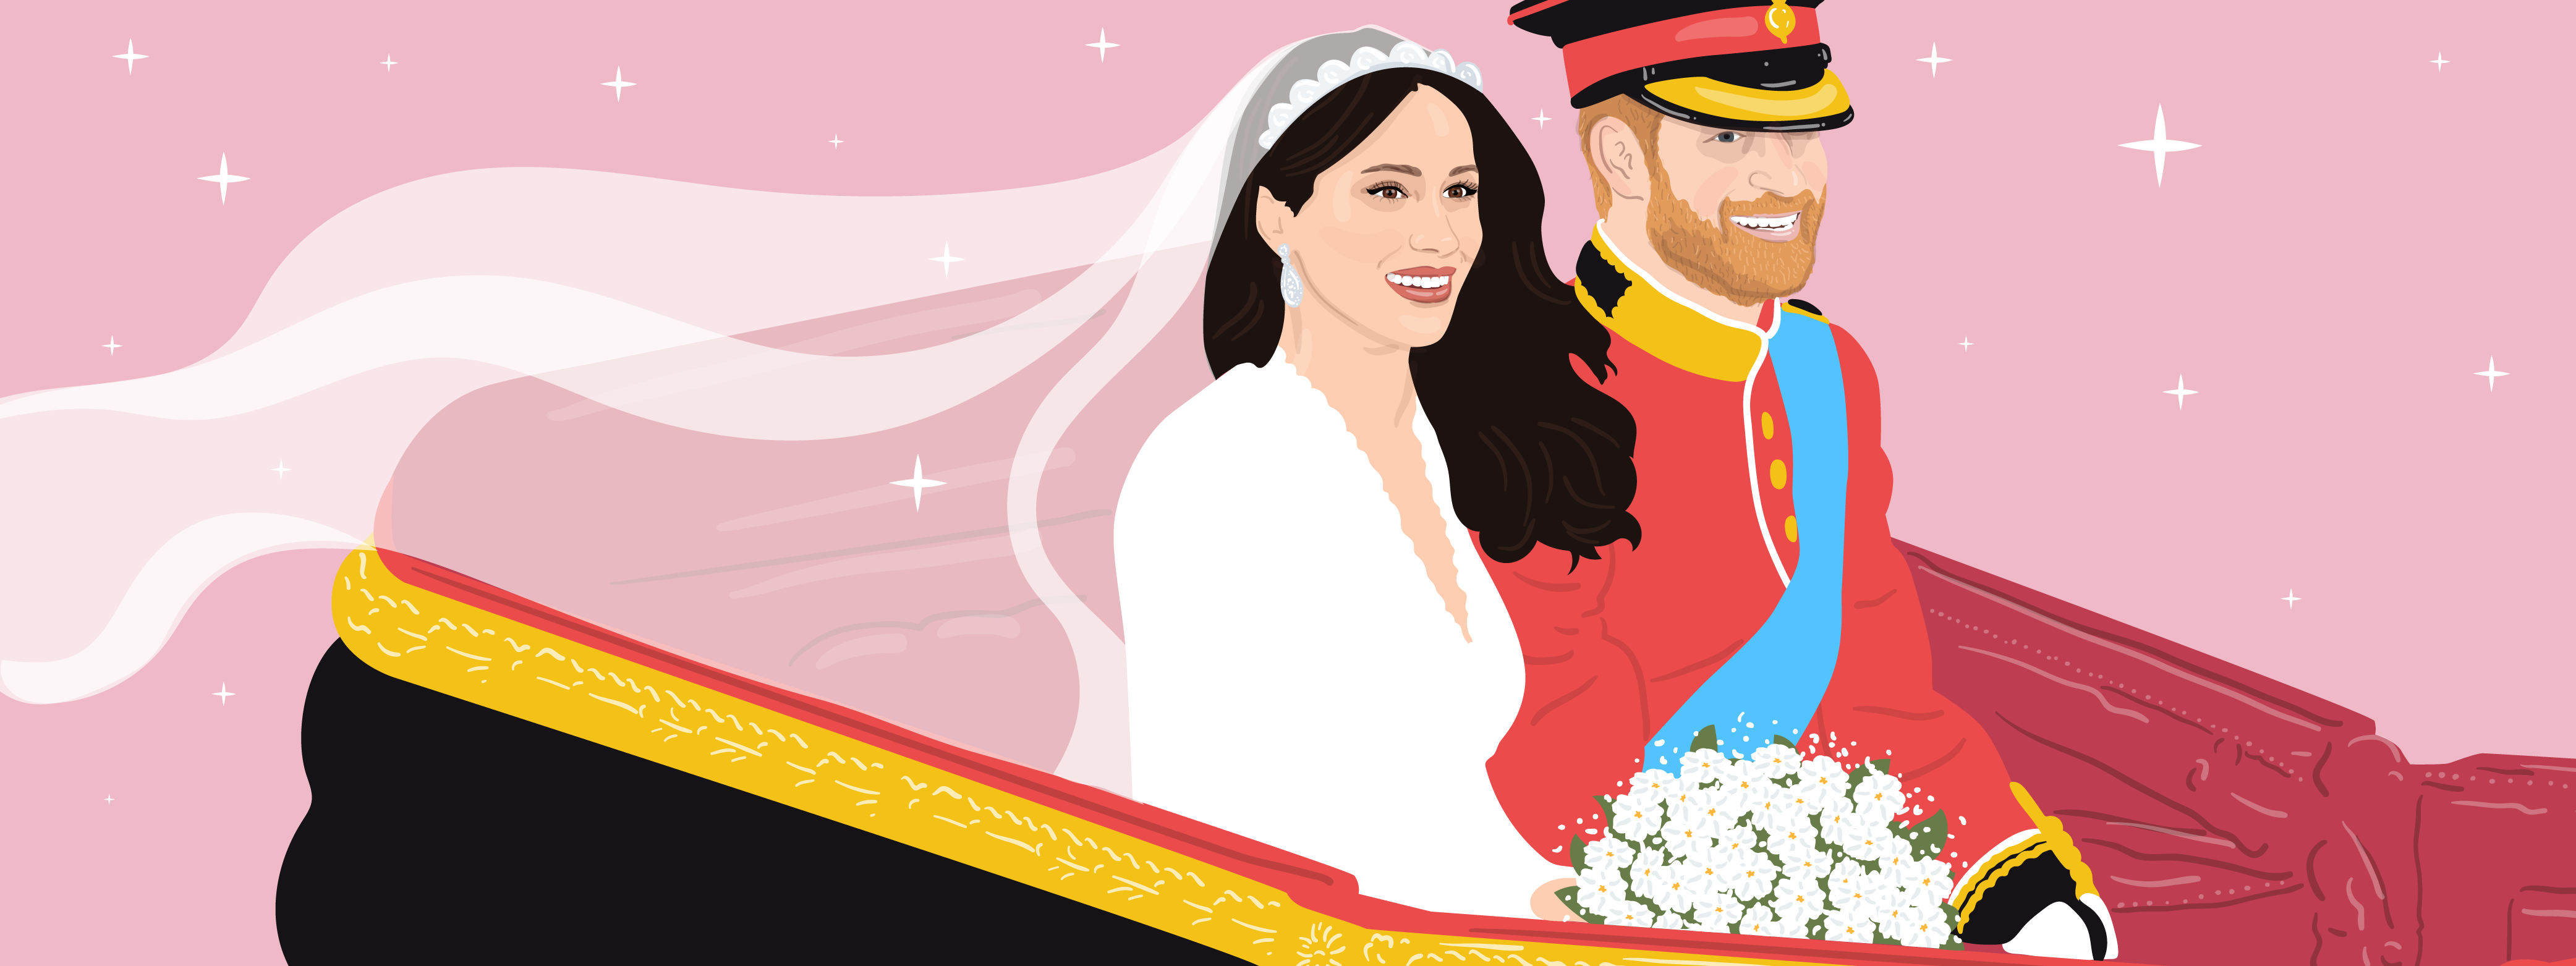 How To Watch Royal Wedding Online For Free In The US